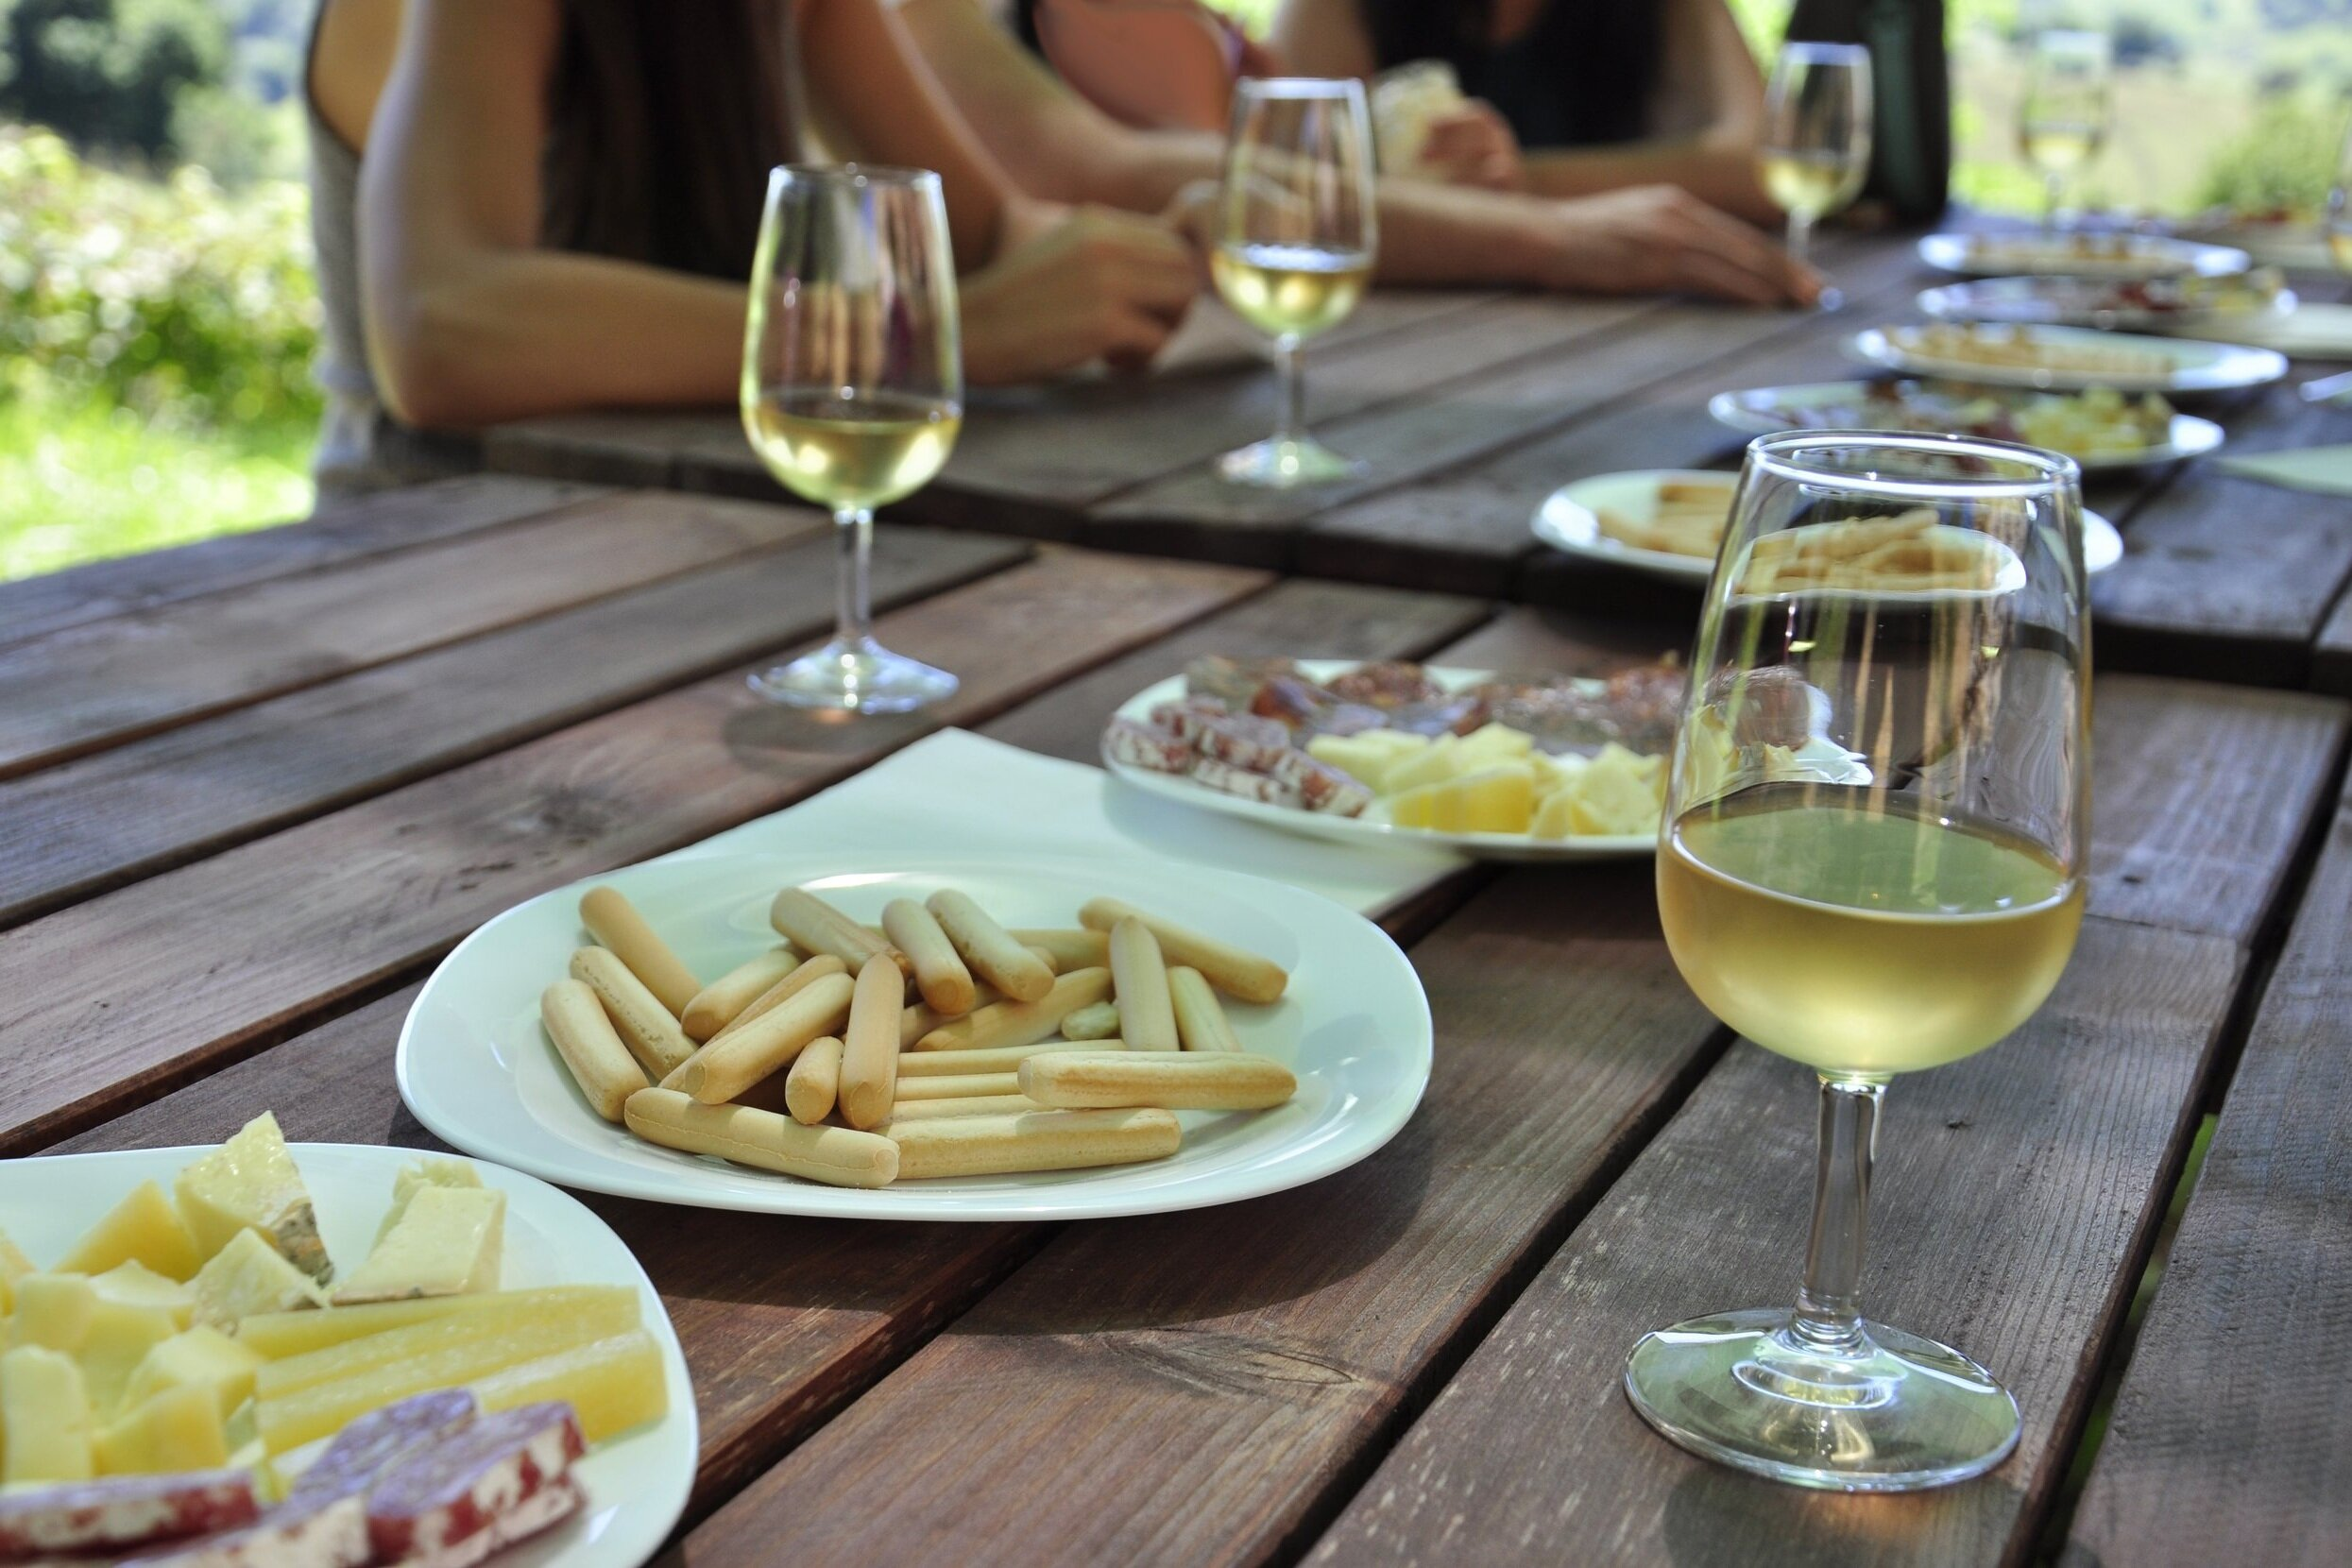 GASTRONOMY & WINE TOURISM - Experiences selection related to the catalan gastronomy and wine tourism